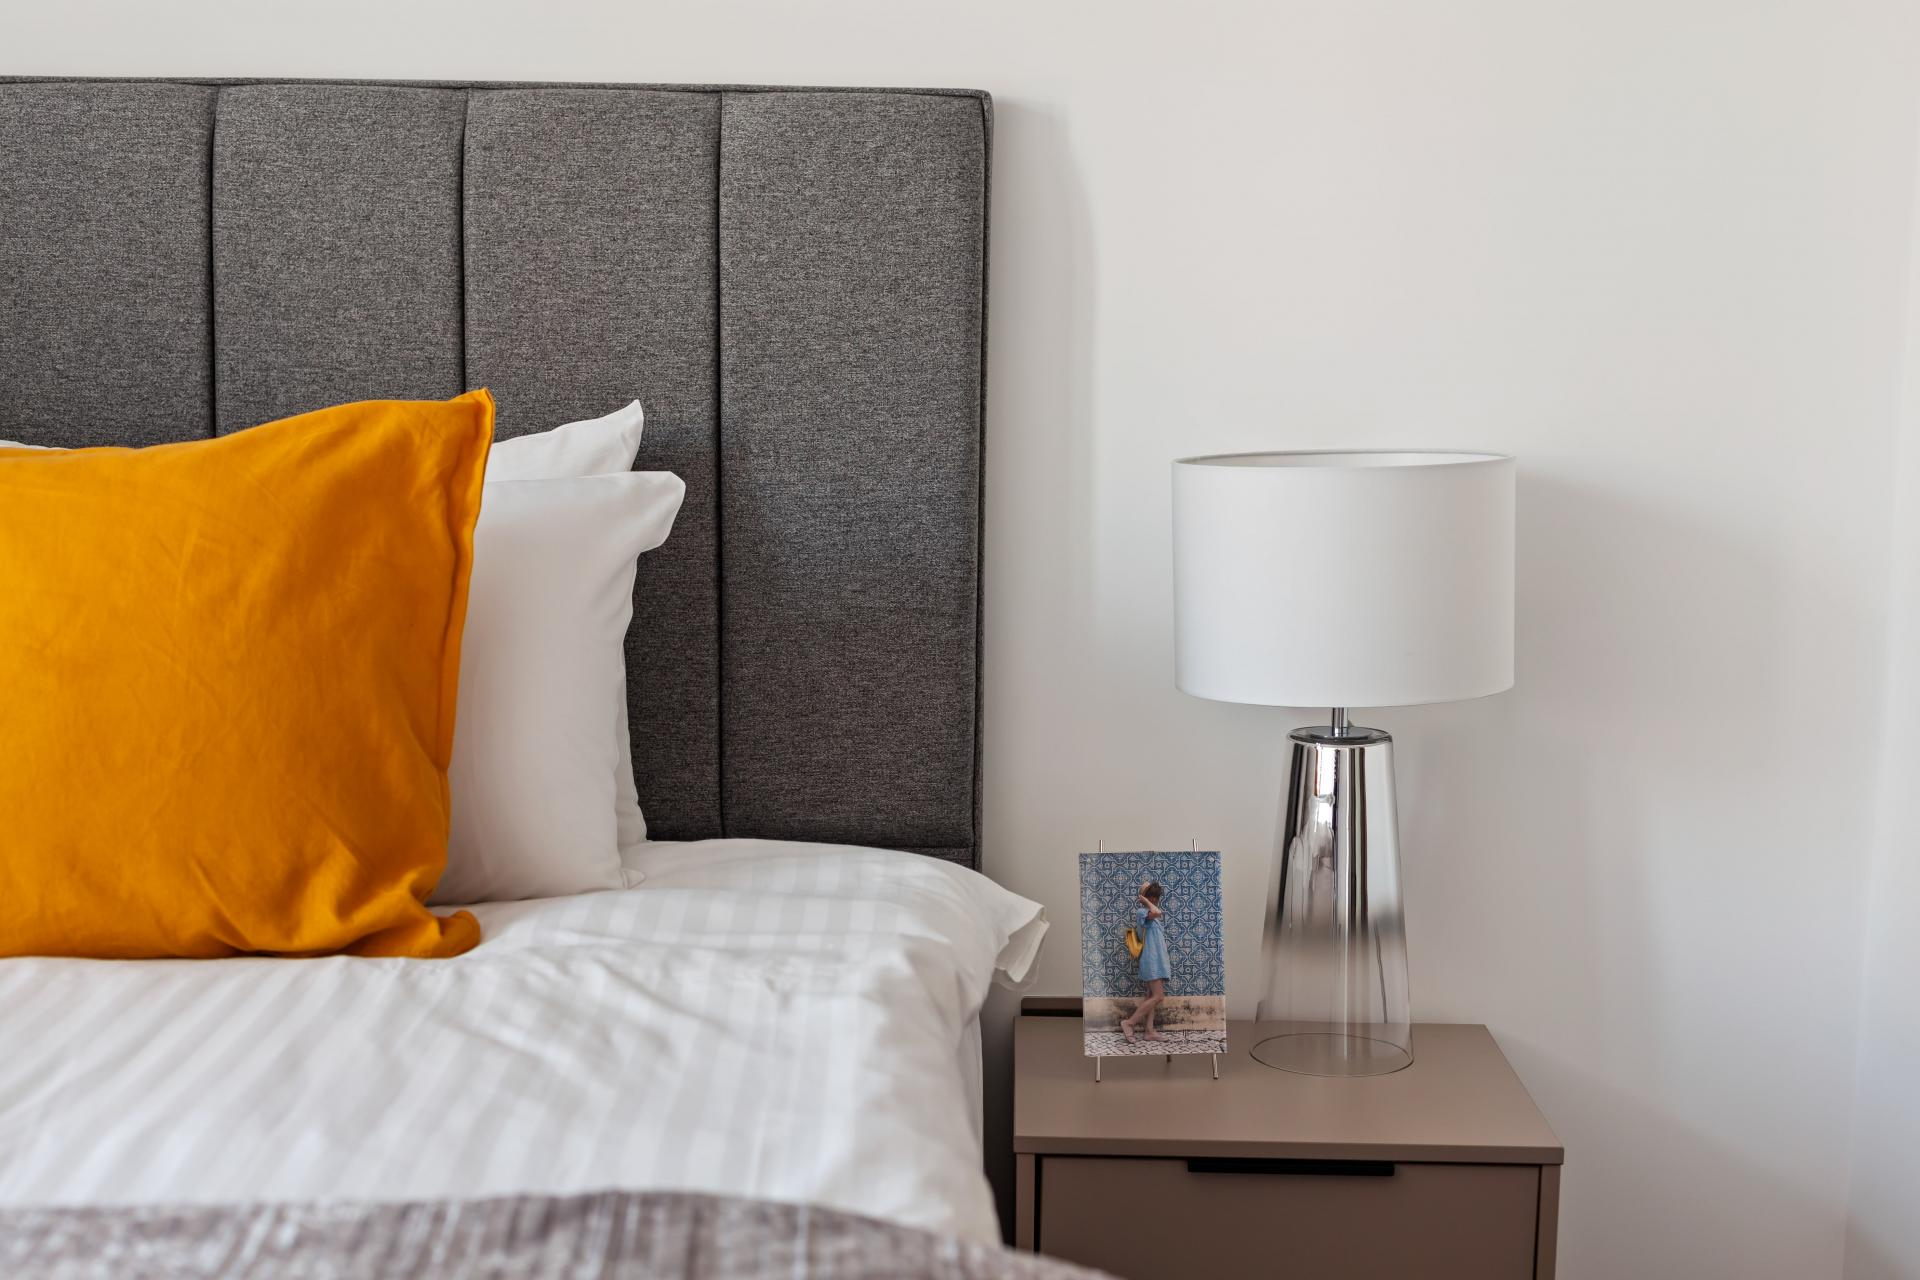 Bedding at The Residence Tower Hill, Whitechapel, London - Citybase Apartments